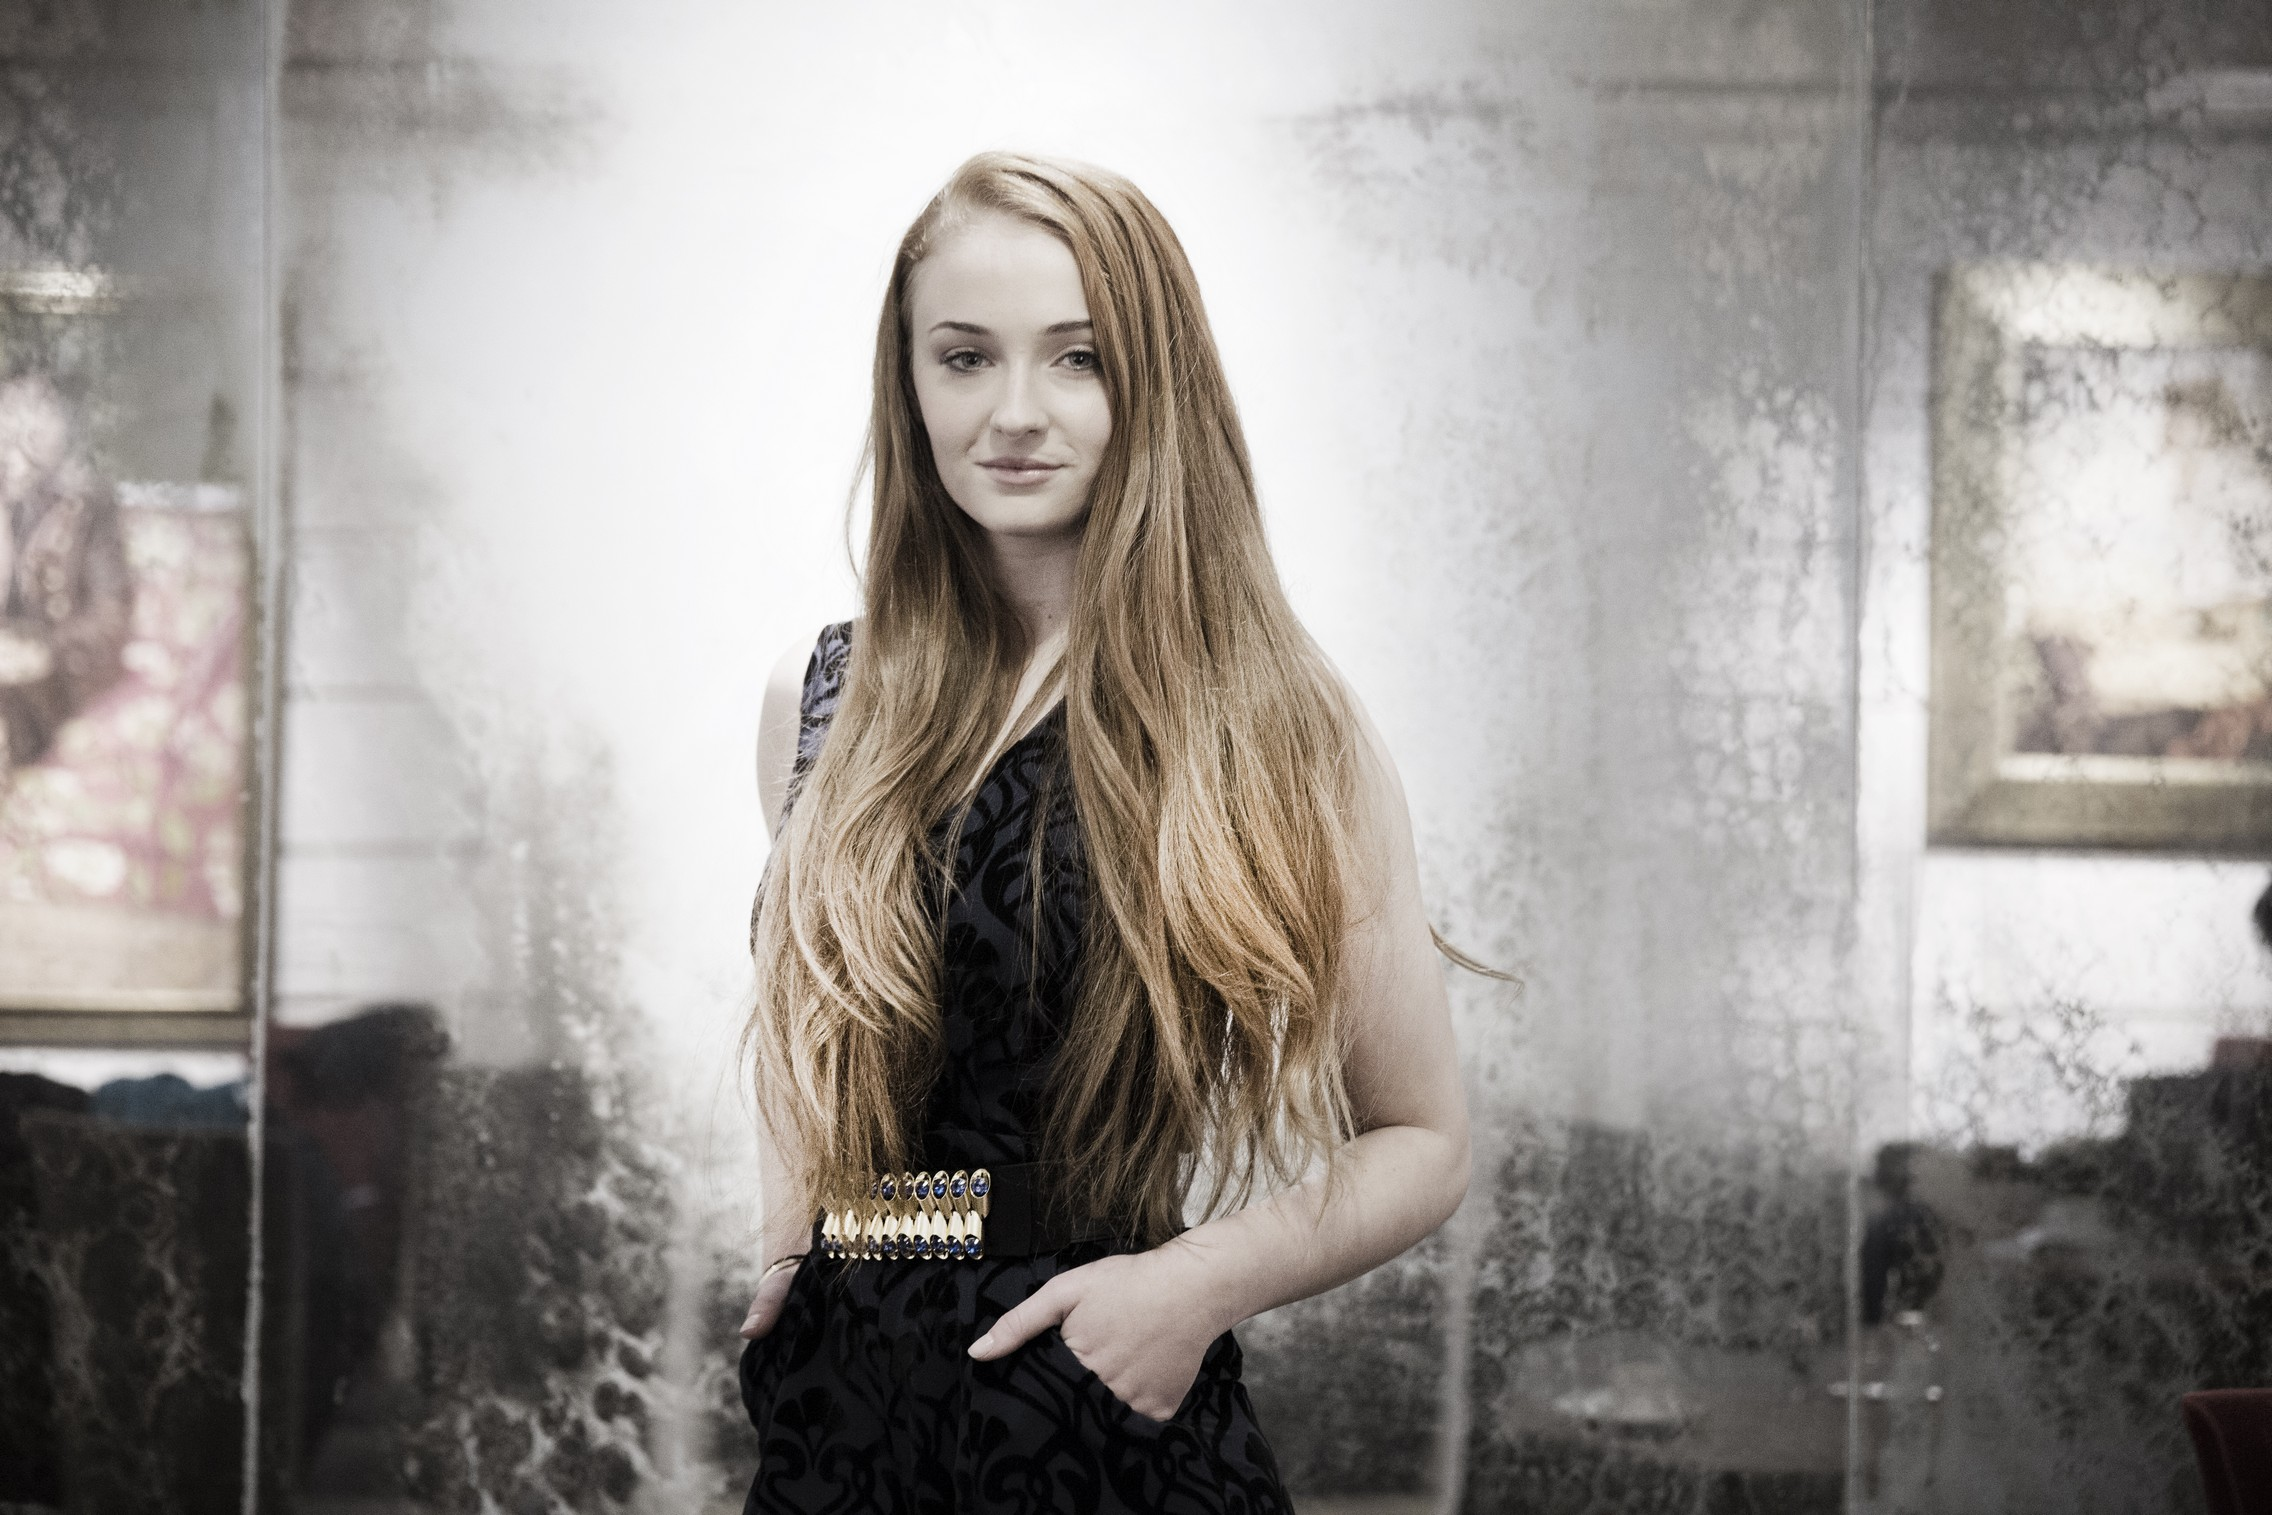 sophie turner hq desktop - photo #21